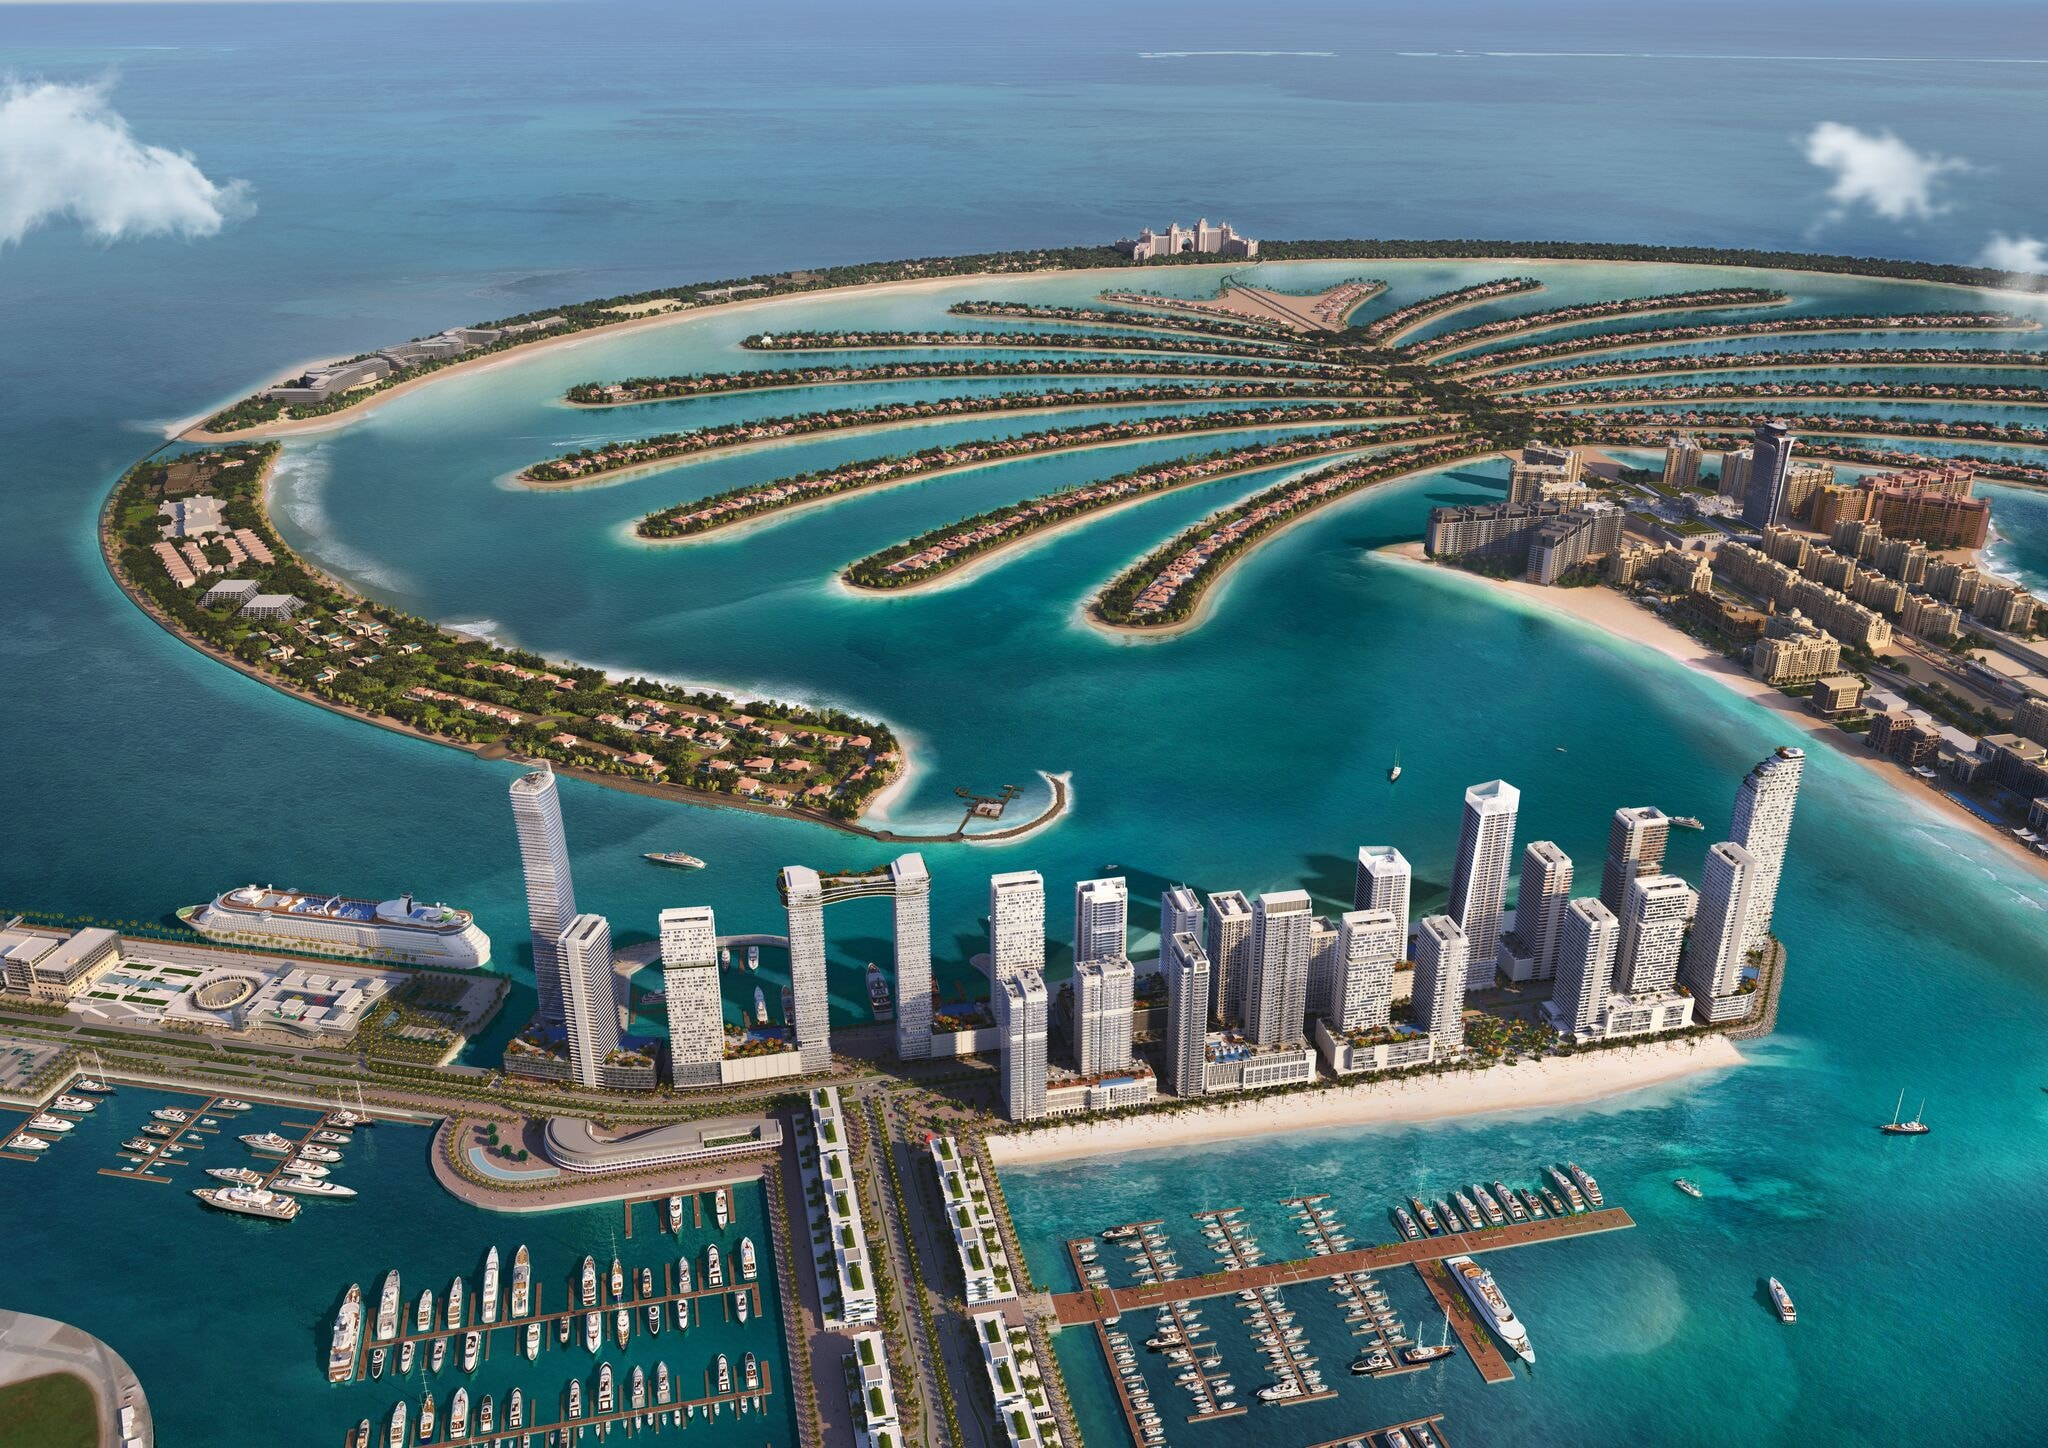 emaar beachfront is one of the most popular communities for to invest in Dubai off-plan properties.